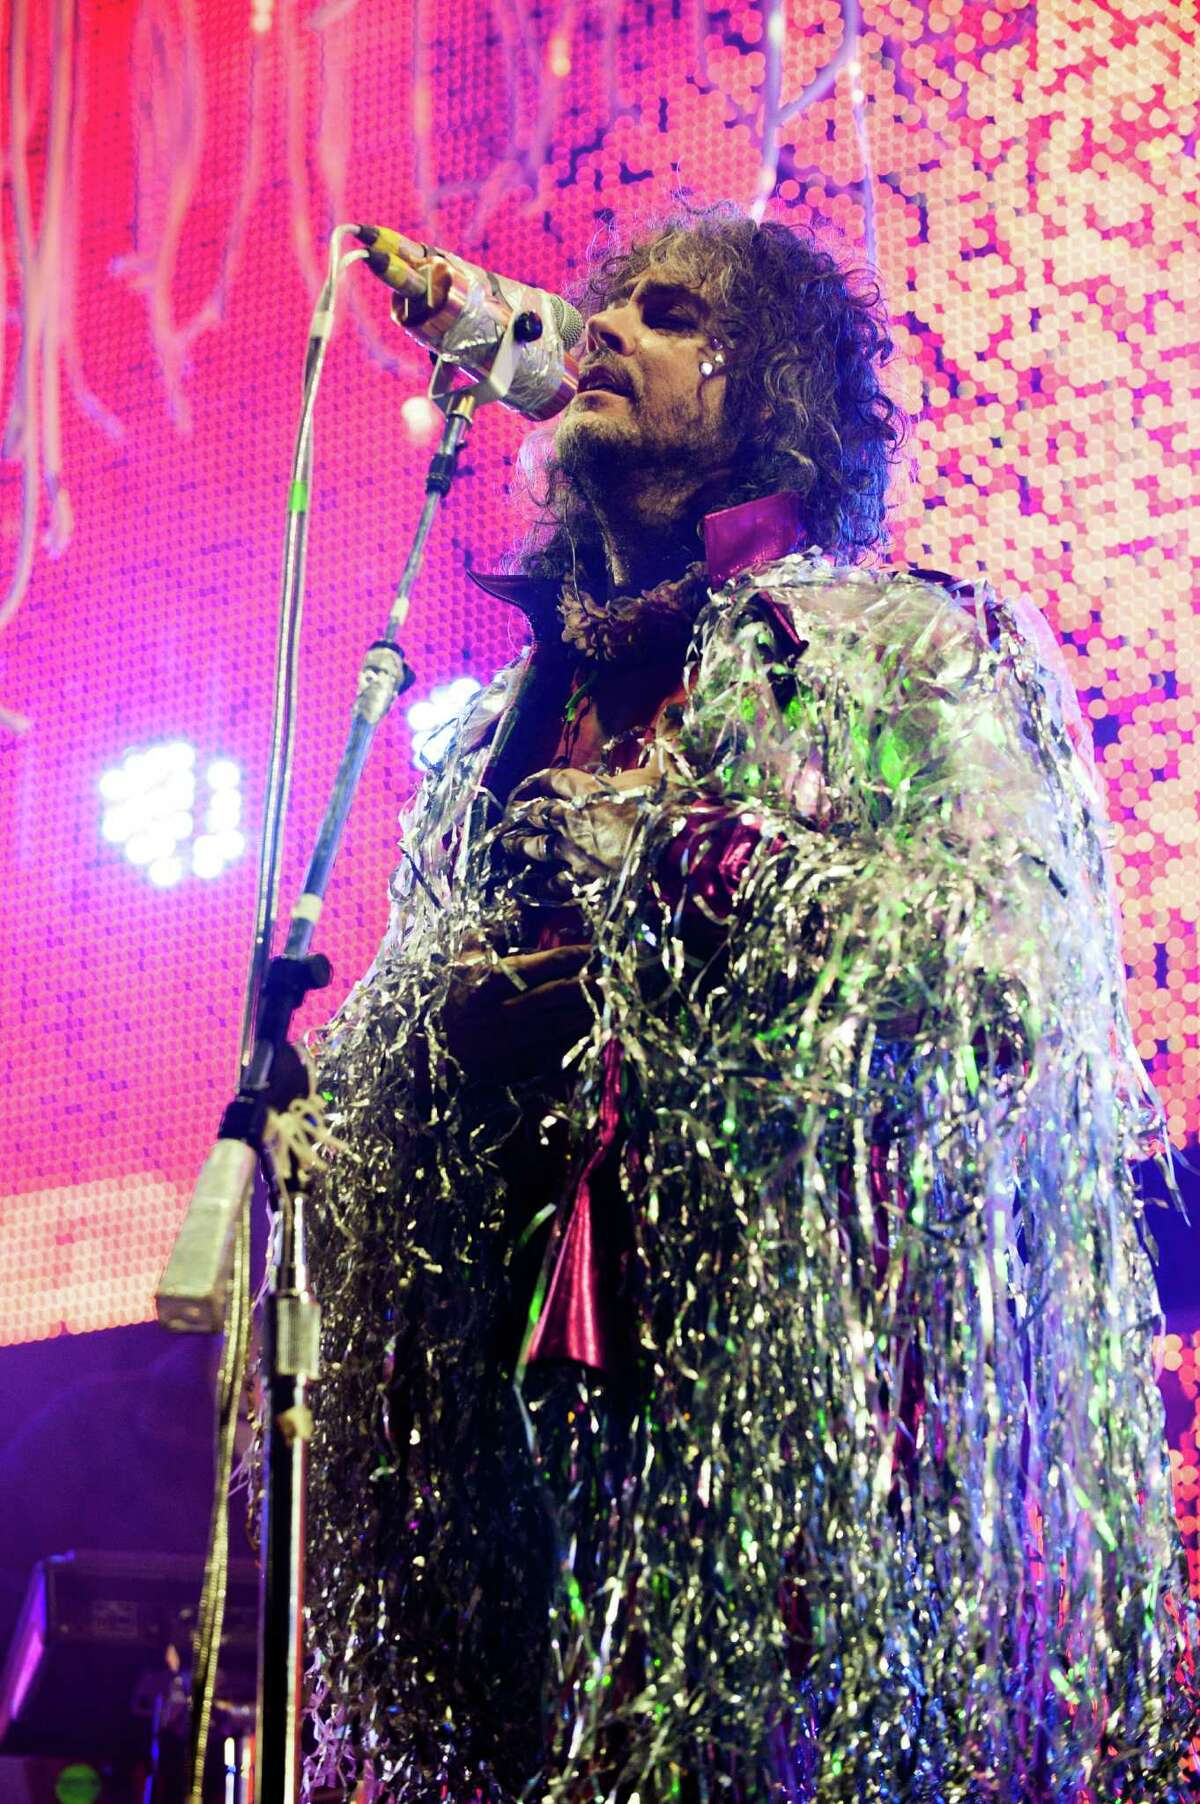 Beloved psych rock weirdos the Flaming Lips will put out